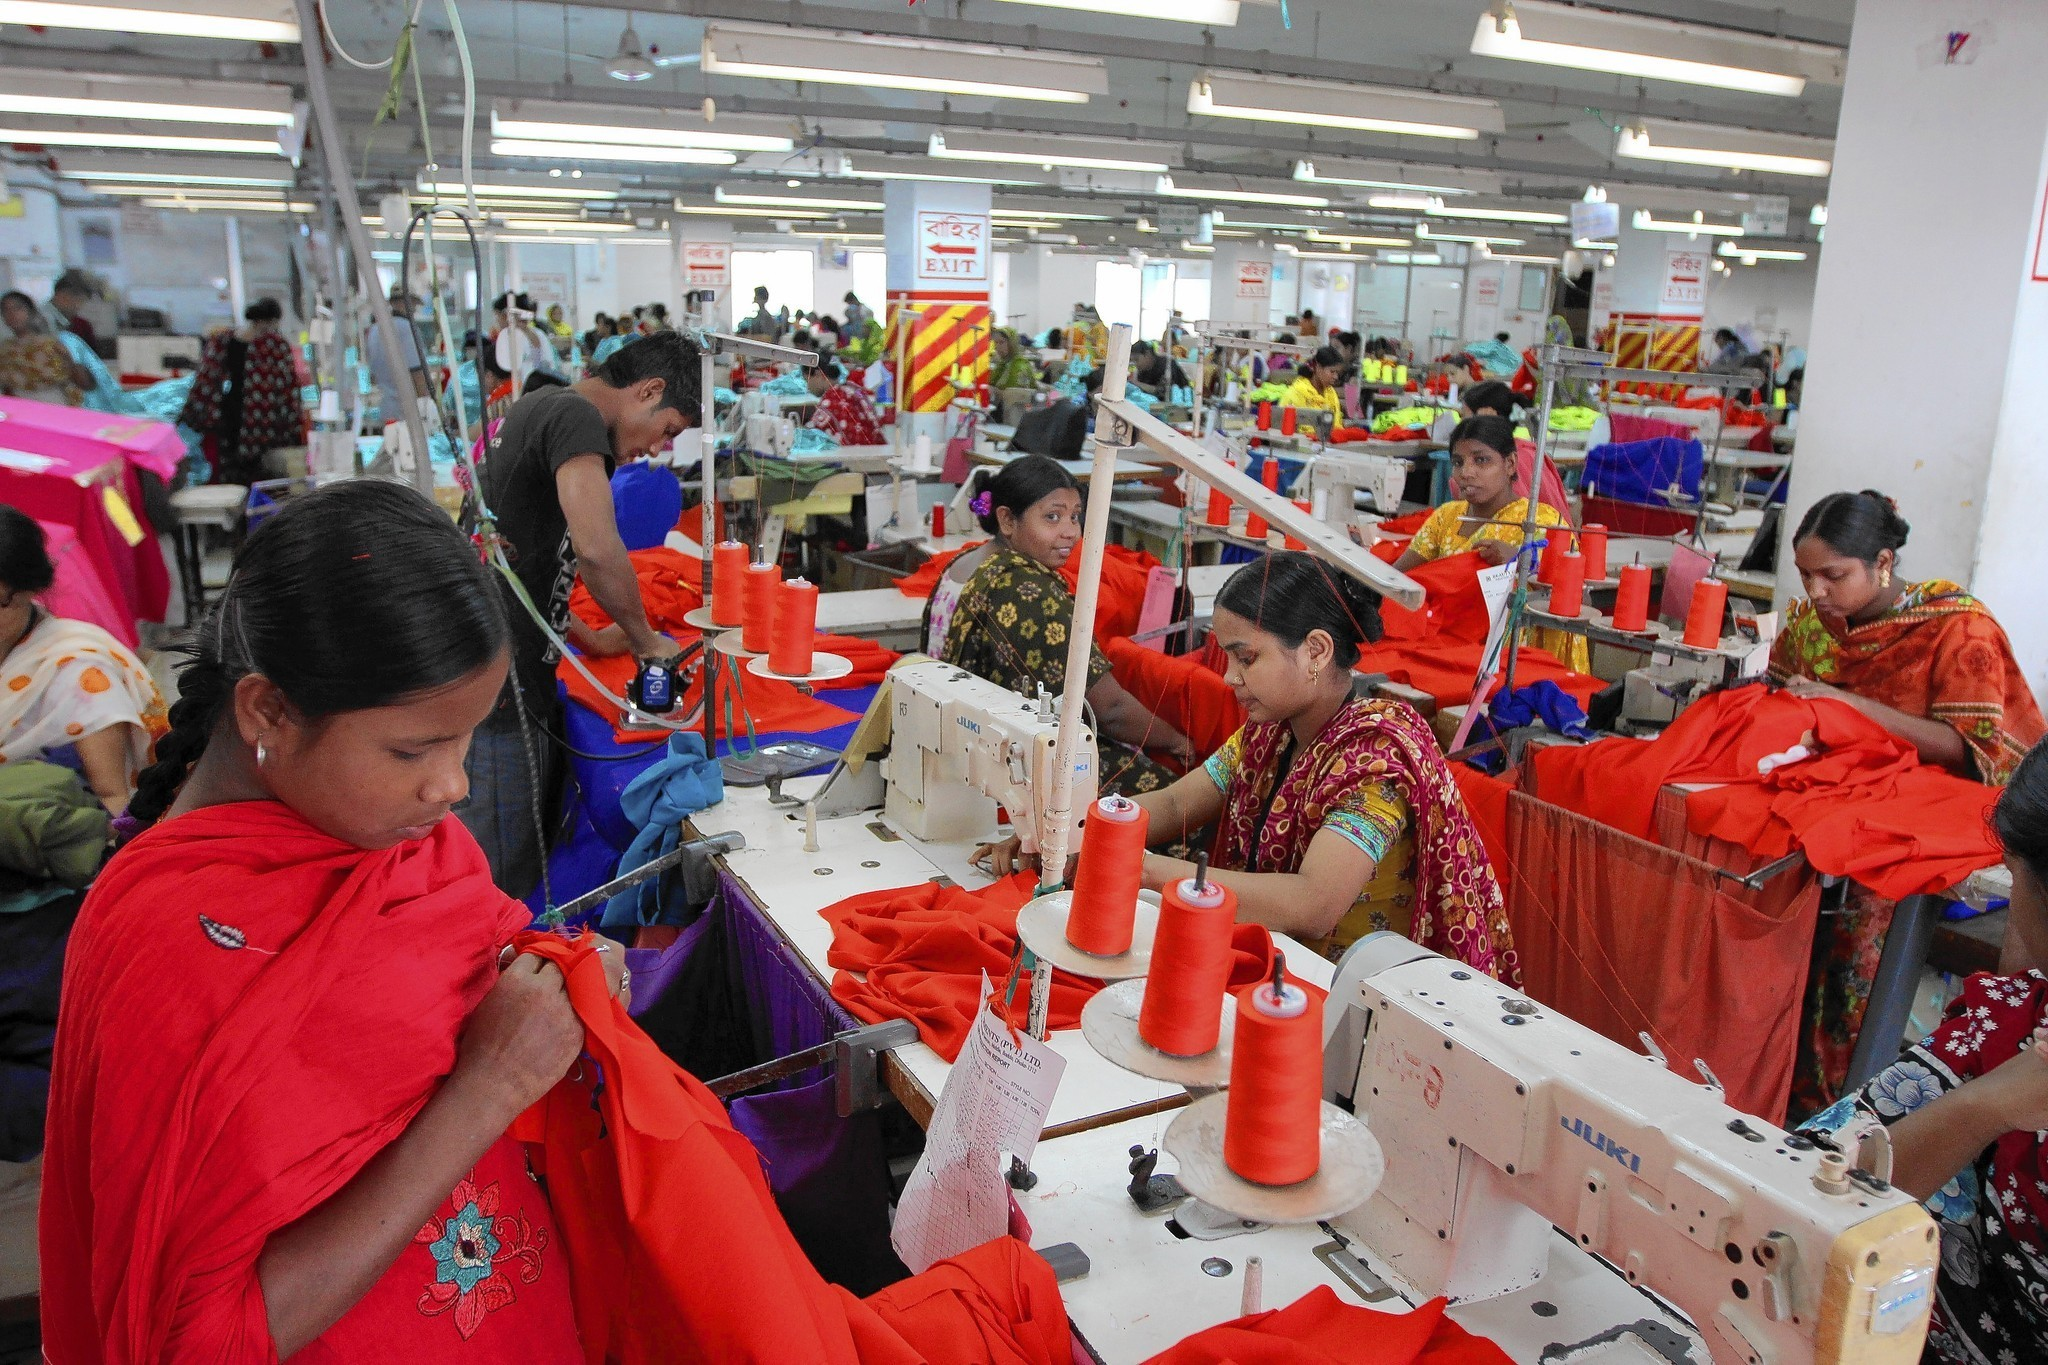 hitory of textile industry in bangladesh Bangladesh operates a thriving textile and clothing export industry and is one of the world's largest garment exporters garments account for almost 80 percent of its total exports.